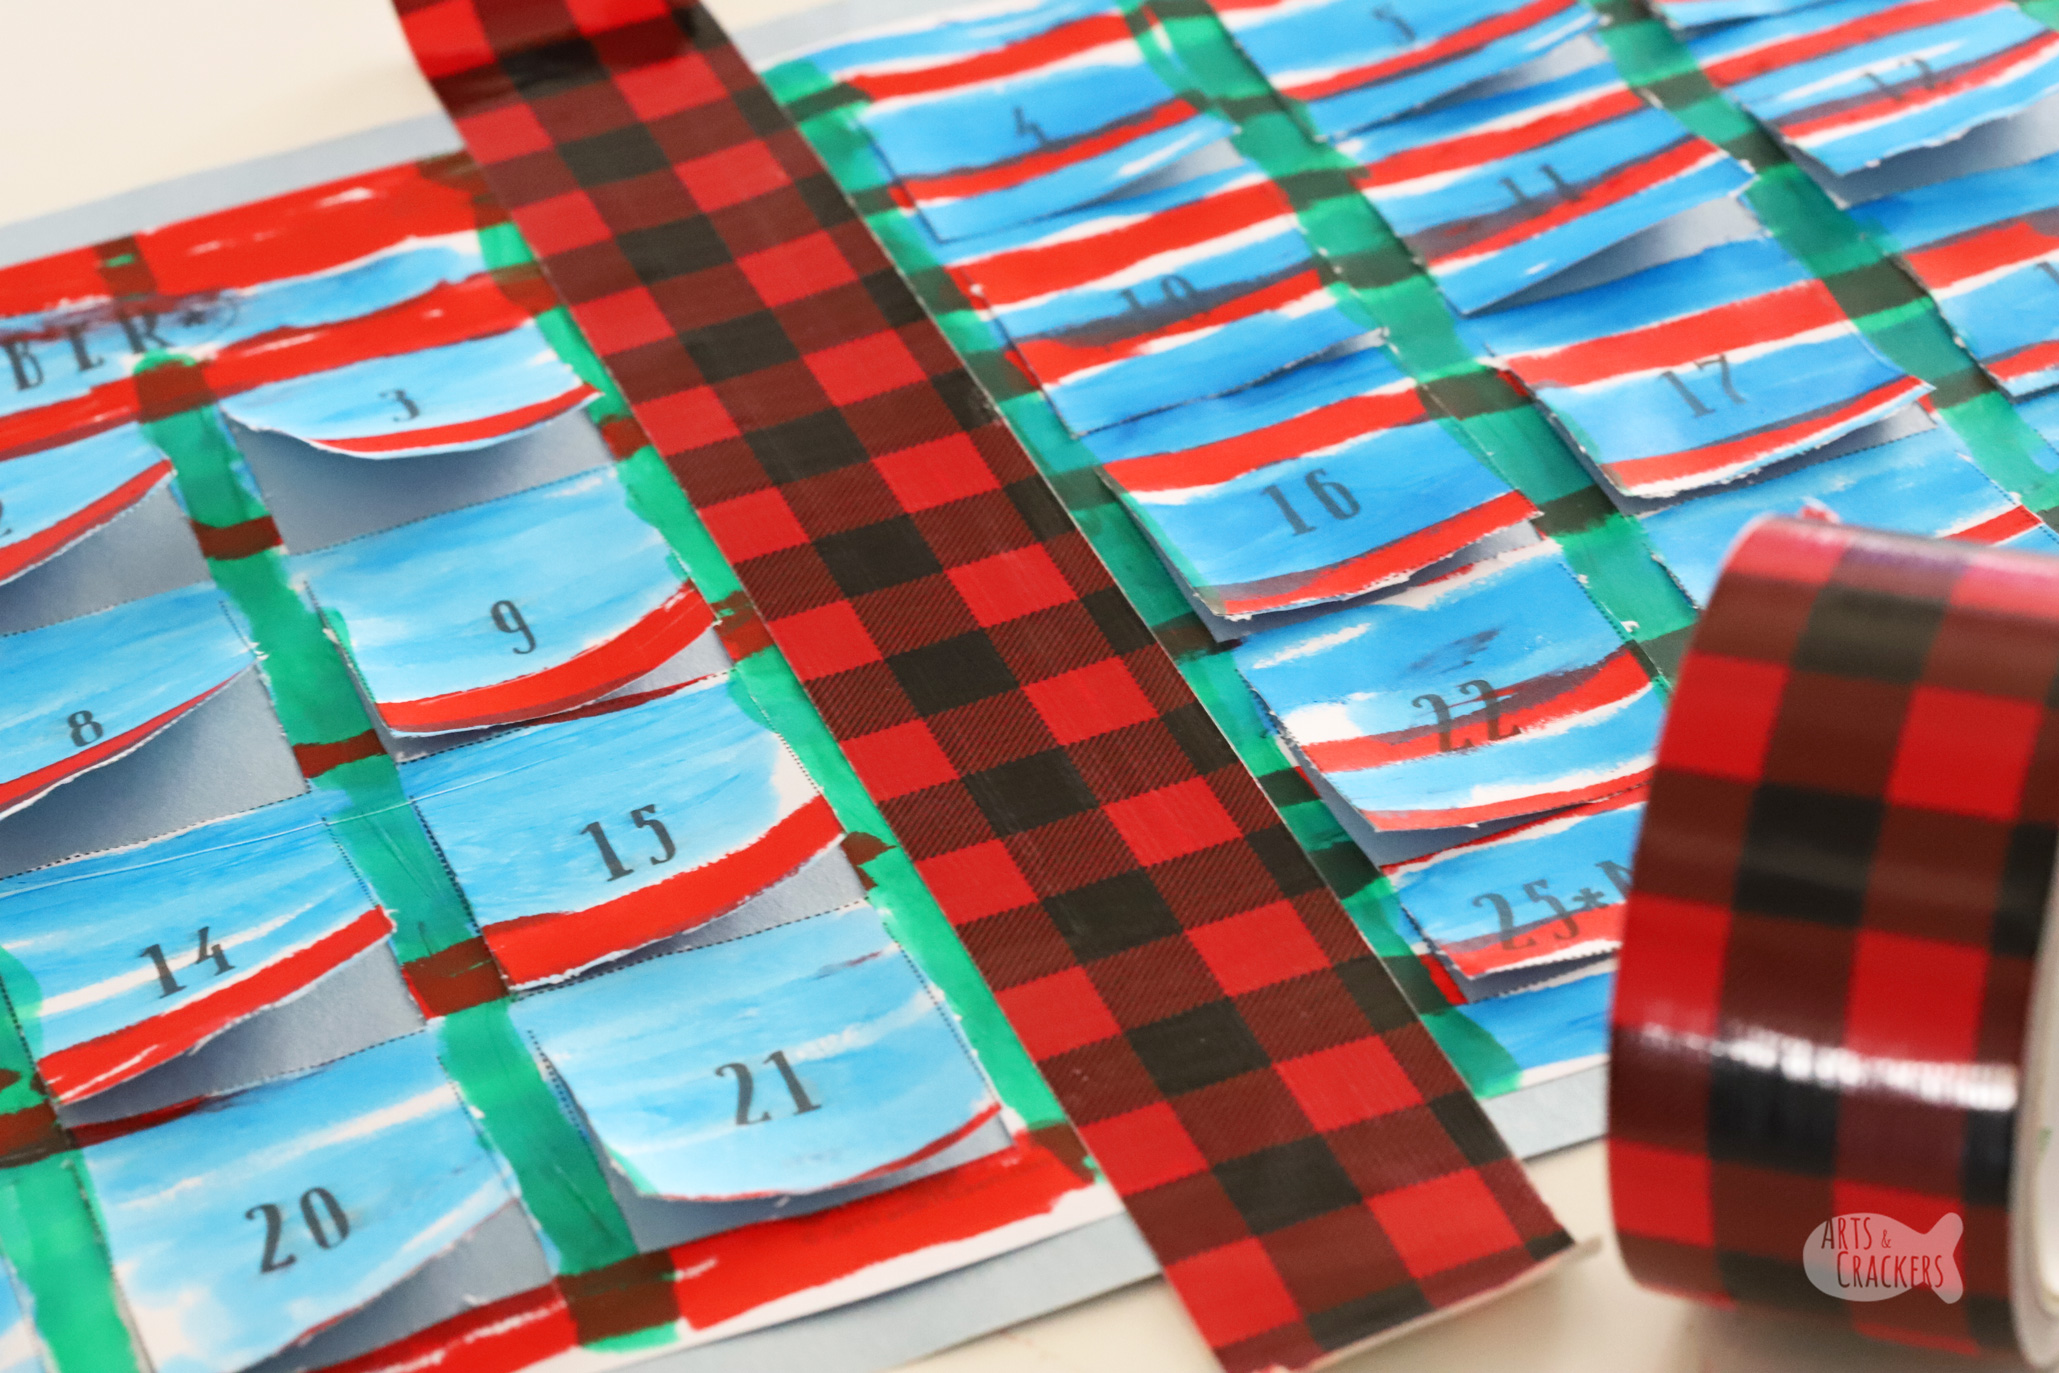 Get crafty with the kids and make this DIY Christmas Craft Advent Calendar for Kids as a fun countdown to Christmas! | Christmas crafts | kid crafts | kids activities | advent calendar | Christmas for kids | Christmas countdown | paper crafts | Kwik Stix | printables for kids | holidays for kids | winter holidays | Christmas crafting | crafty mom | #kidcrafts #christmas #papercrafts #advent